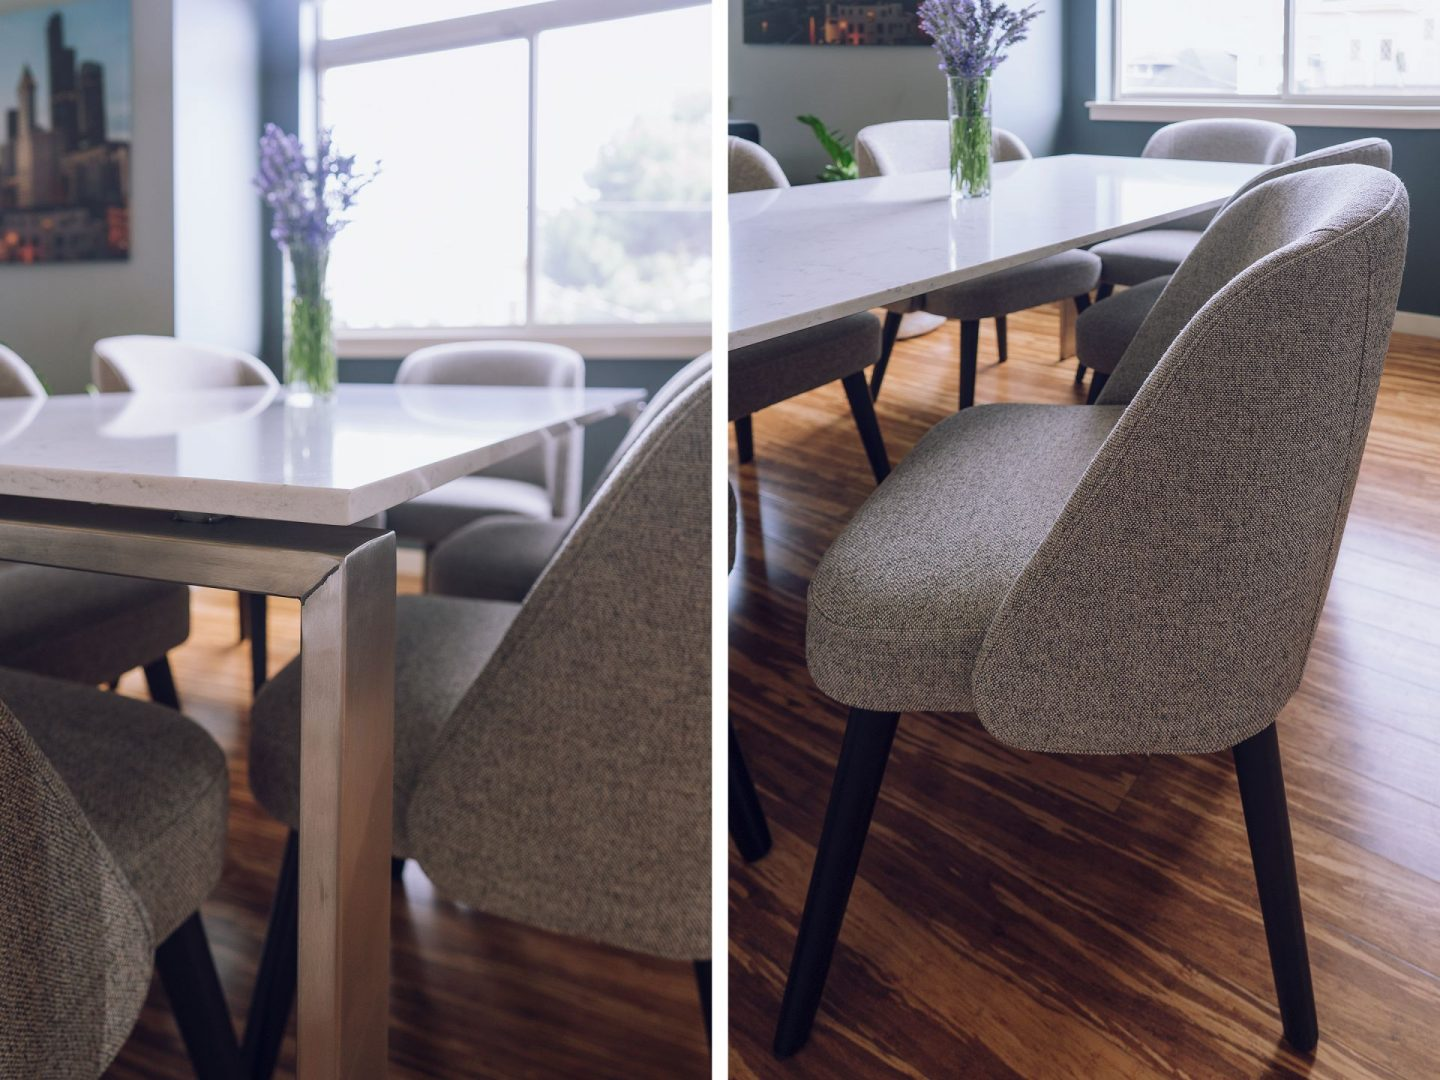 Room and Board Rand Dining Table Cora tweed side chairs